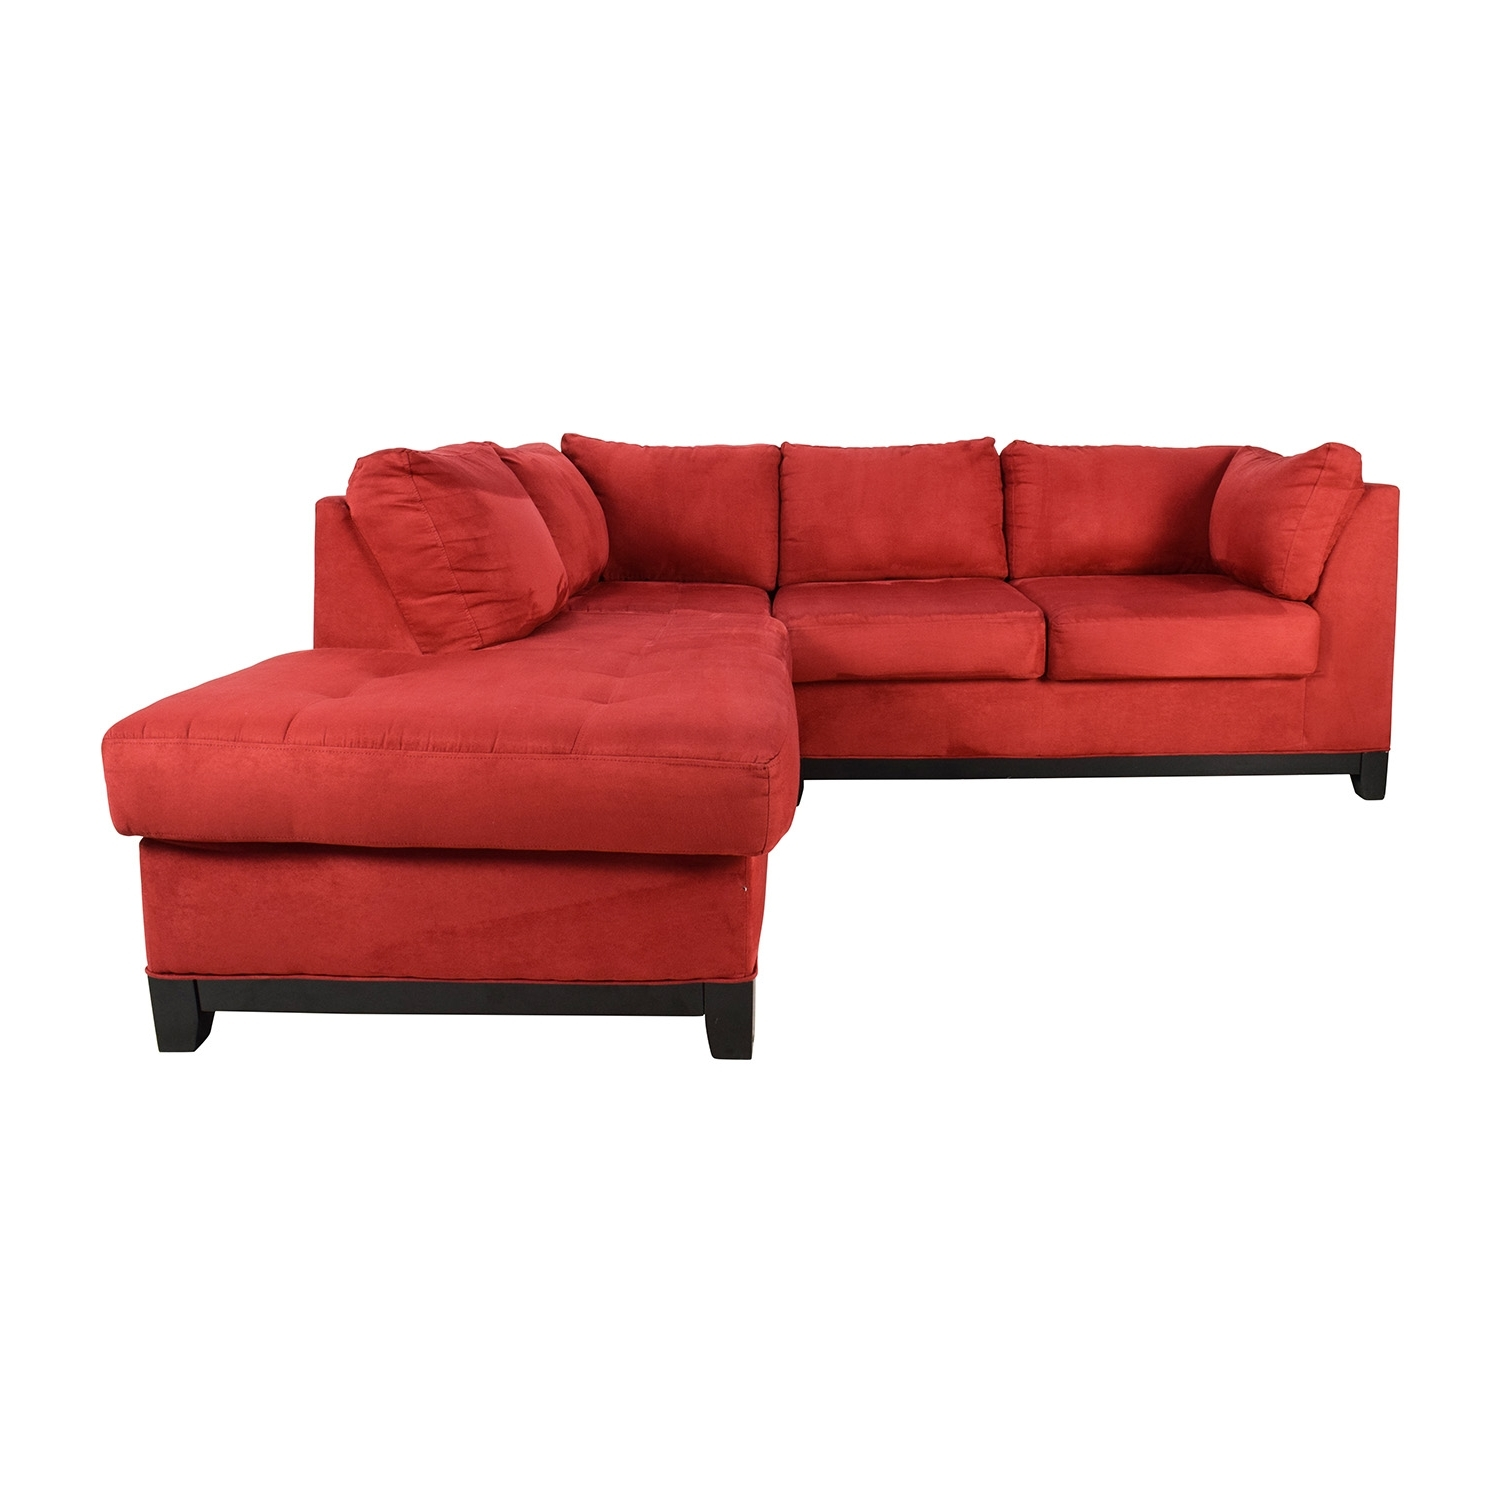 [%67% Off – Raymour And Flanigan Raymour & Flanigan Zella Red Intended For Fashionable Red Sectional Sofas|Red Sectional Sofas For Well Known 67% Off – Raymour And Flanigan Raymour & Flanigan Zella Red|Most Recent Red Sectional Sofas Regarding 67% Off – Raymour And Flanigan Raymour & Flanigan Zella Red|Newest 67% Off – Raymour And Flanigan Raymour & Flanigan Zella Red Throughout Red Sectional Sofas%] (View 20 of 20)